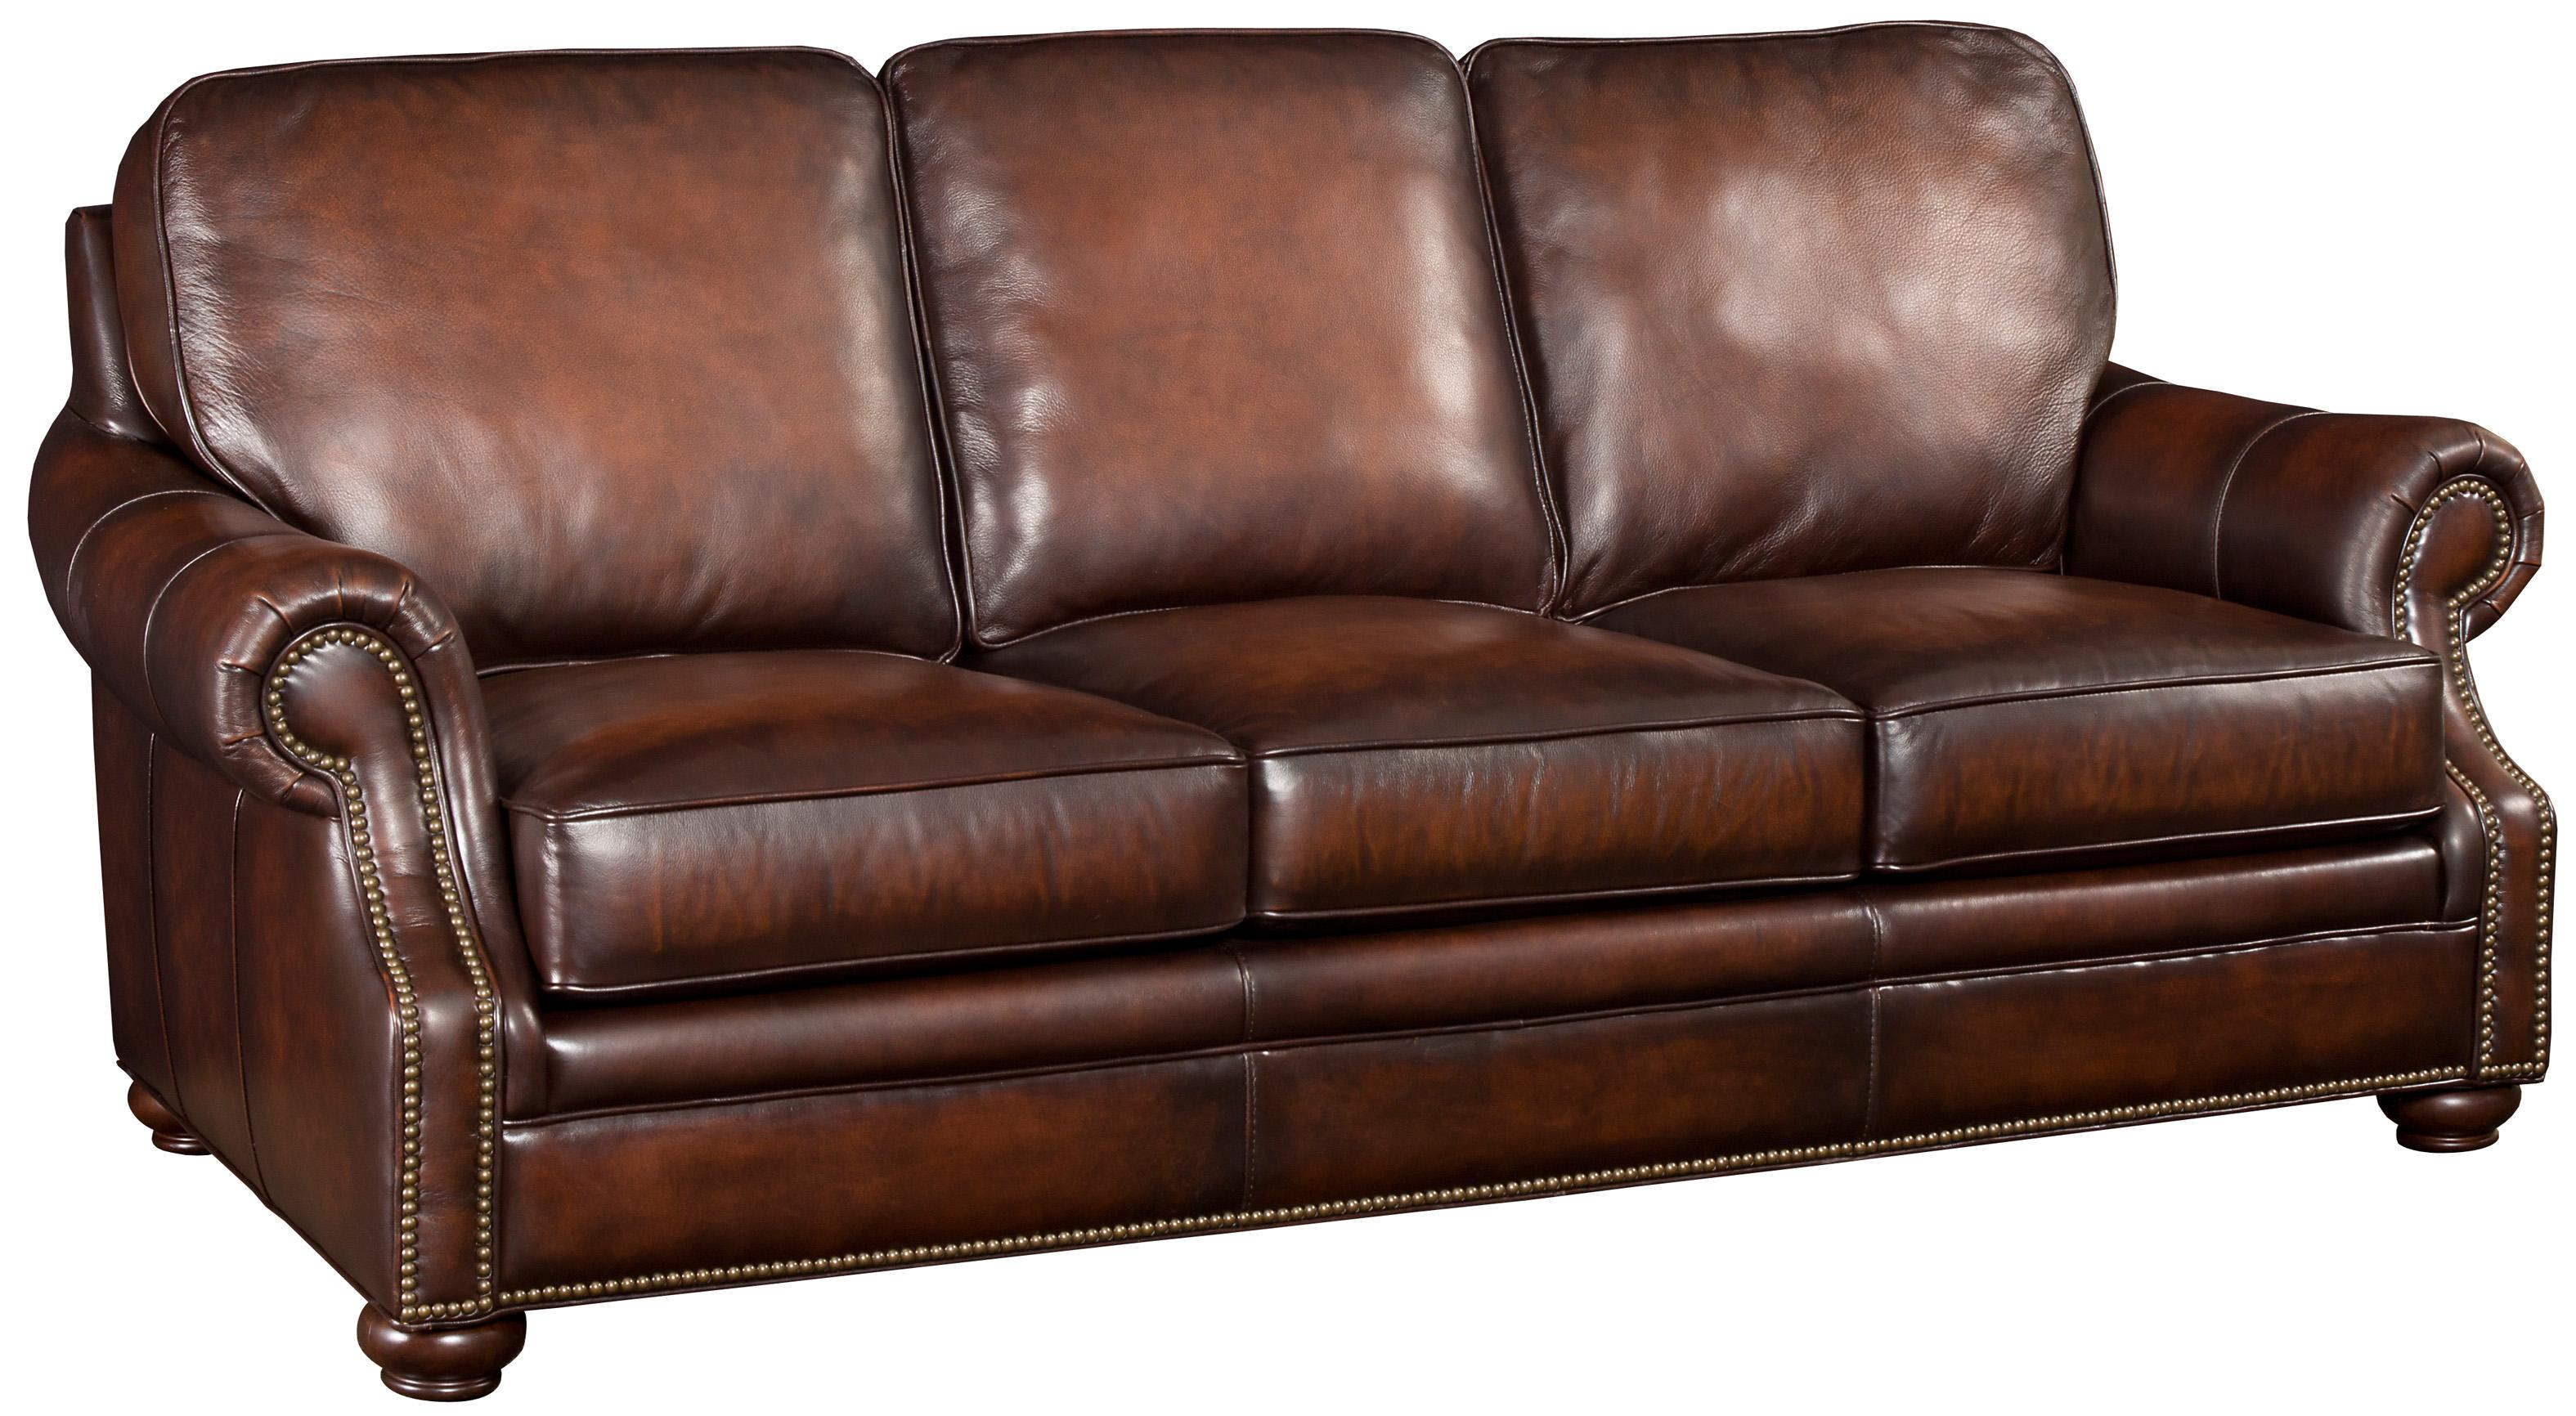 SS185 Leather Sofa by Hooker Furniture at Baer's Furniture